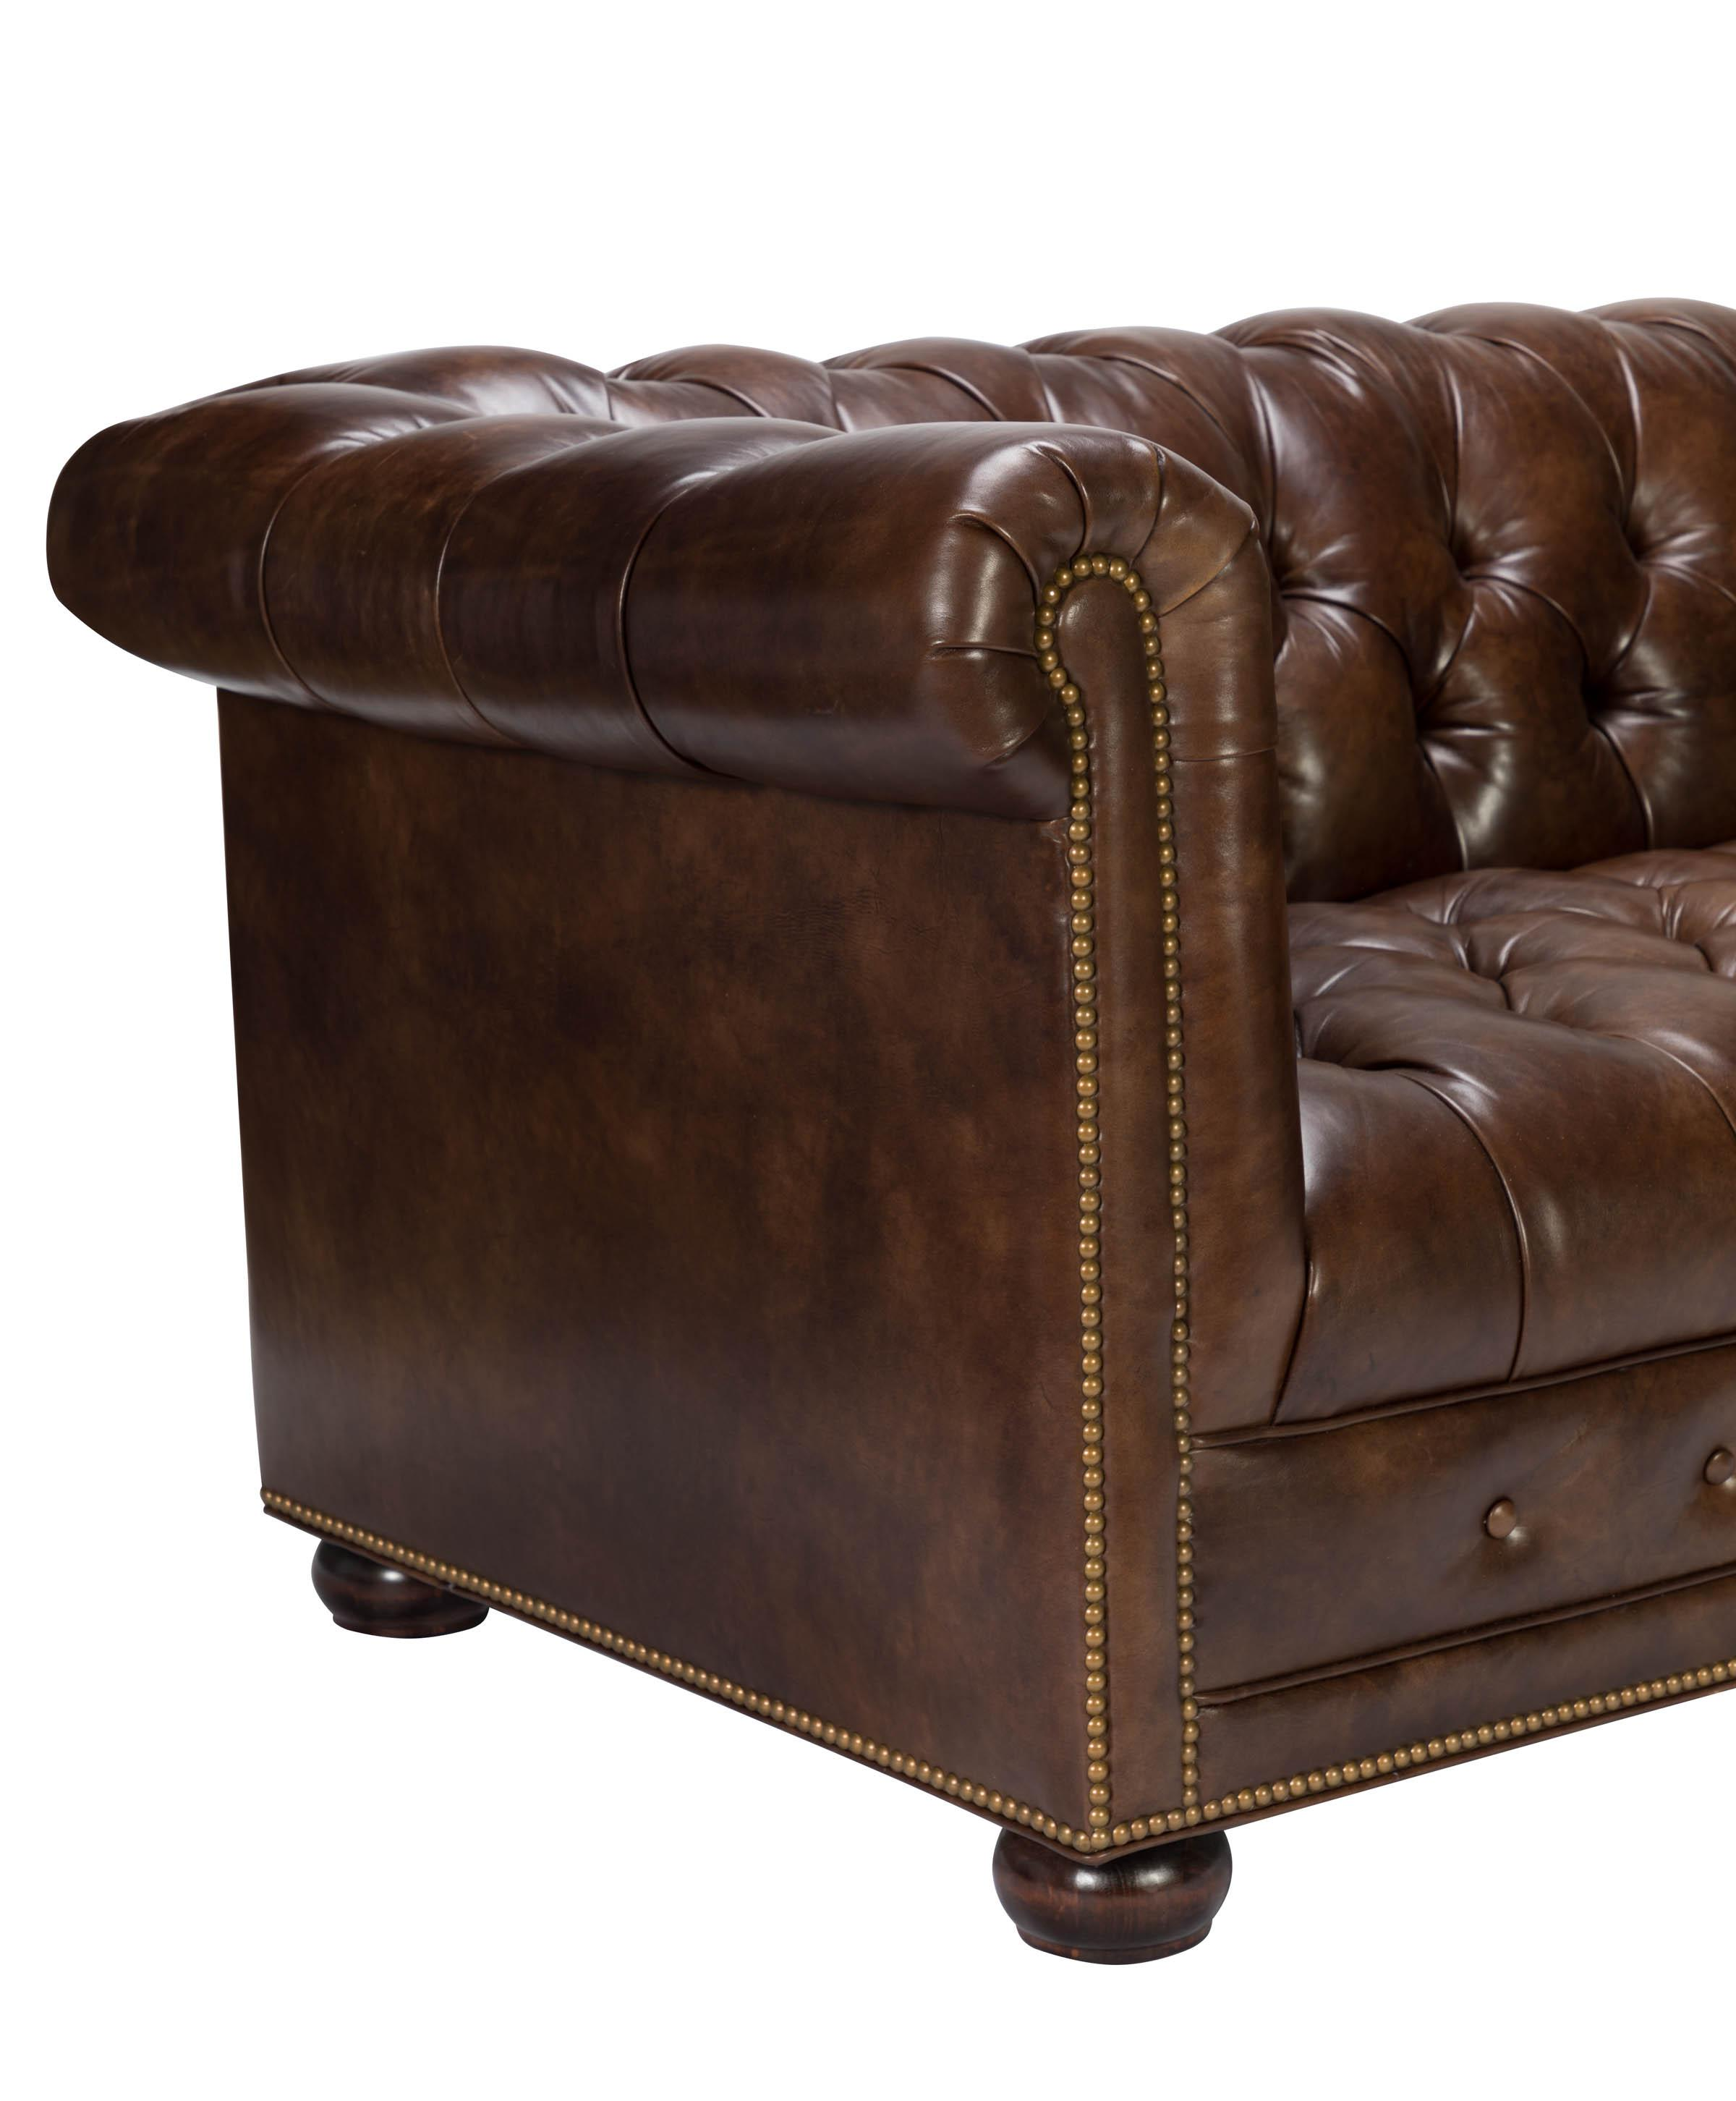 Hancock U0026 Moore Kent Chesterfield Leather Sofa   Image 3 ...